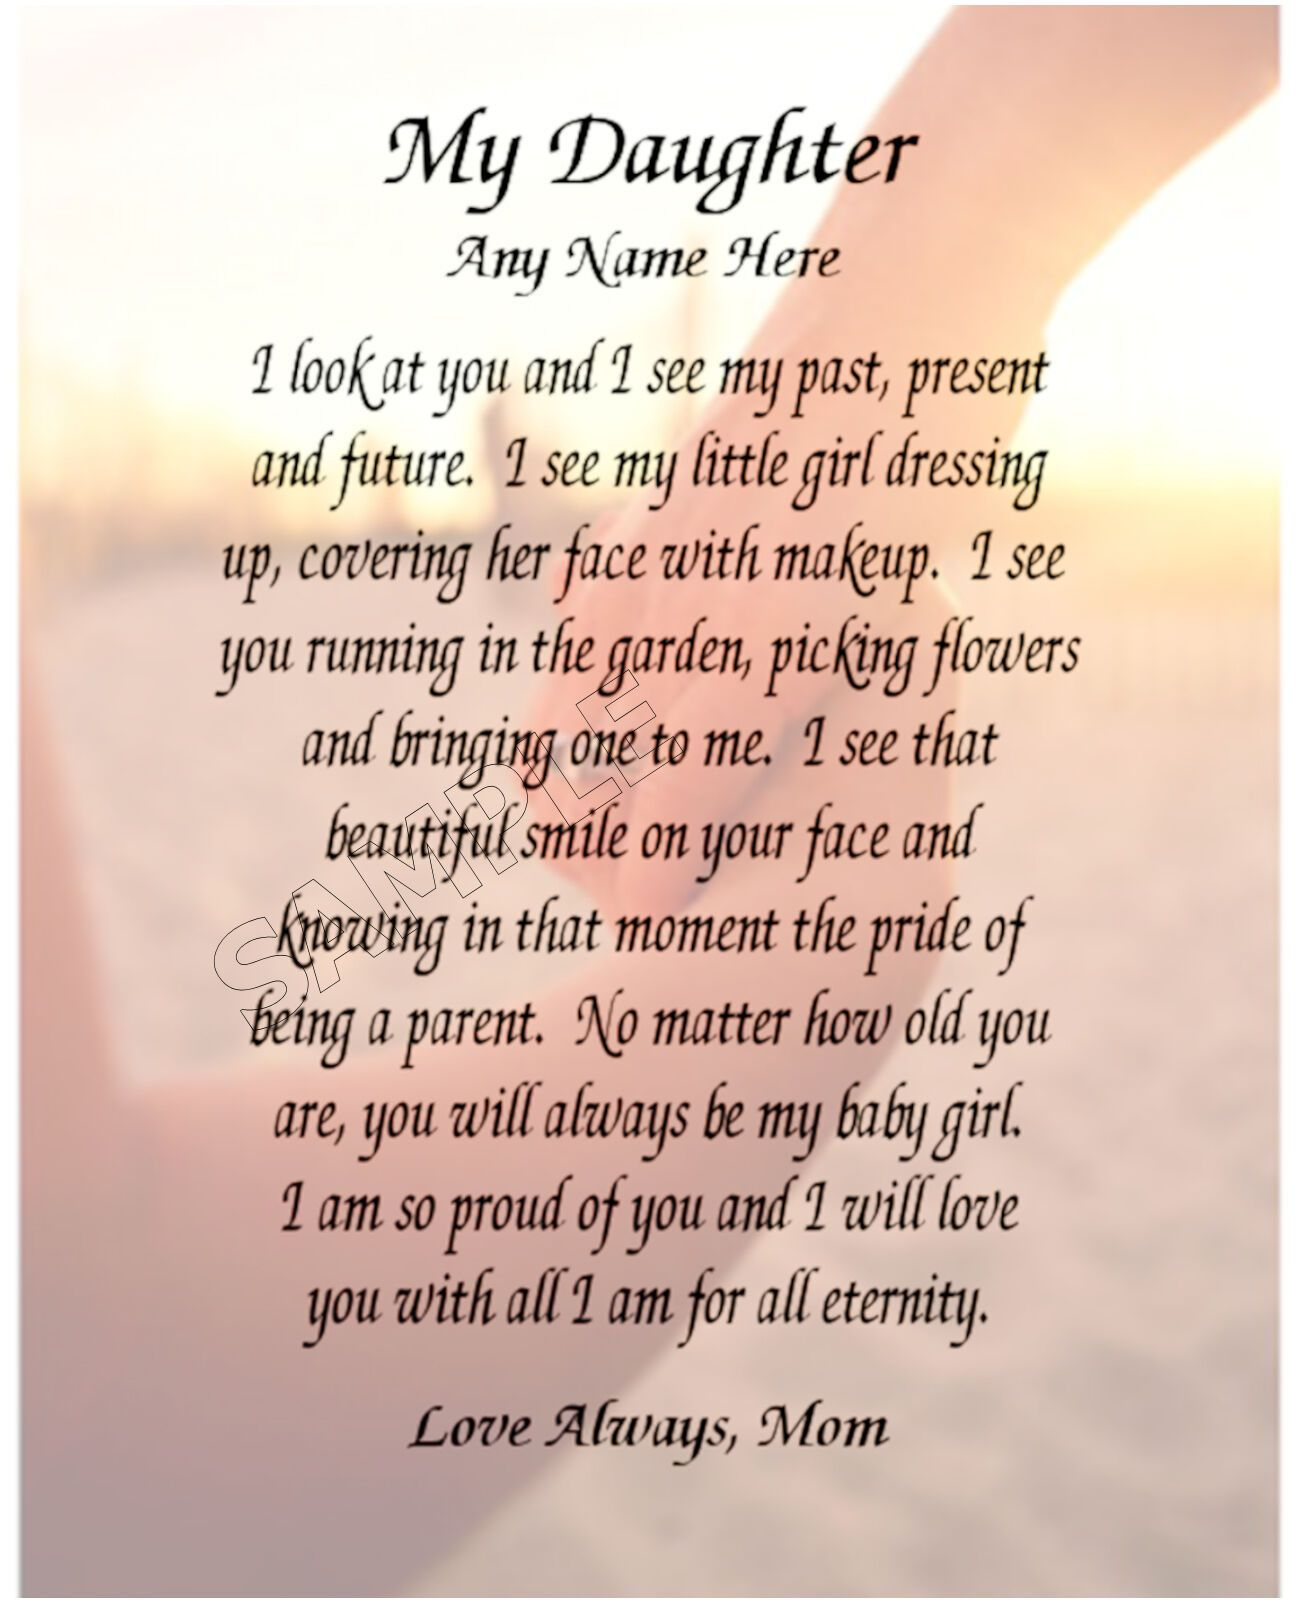 Thank You Daughter Quotes : thank, daughter, quotes, DAUGHTER, PERSONALIZED, MEMORY, BIRTHDAY, Birthday, Quotes, Daughter,, Quotes,, Happy, Daughter